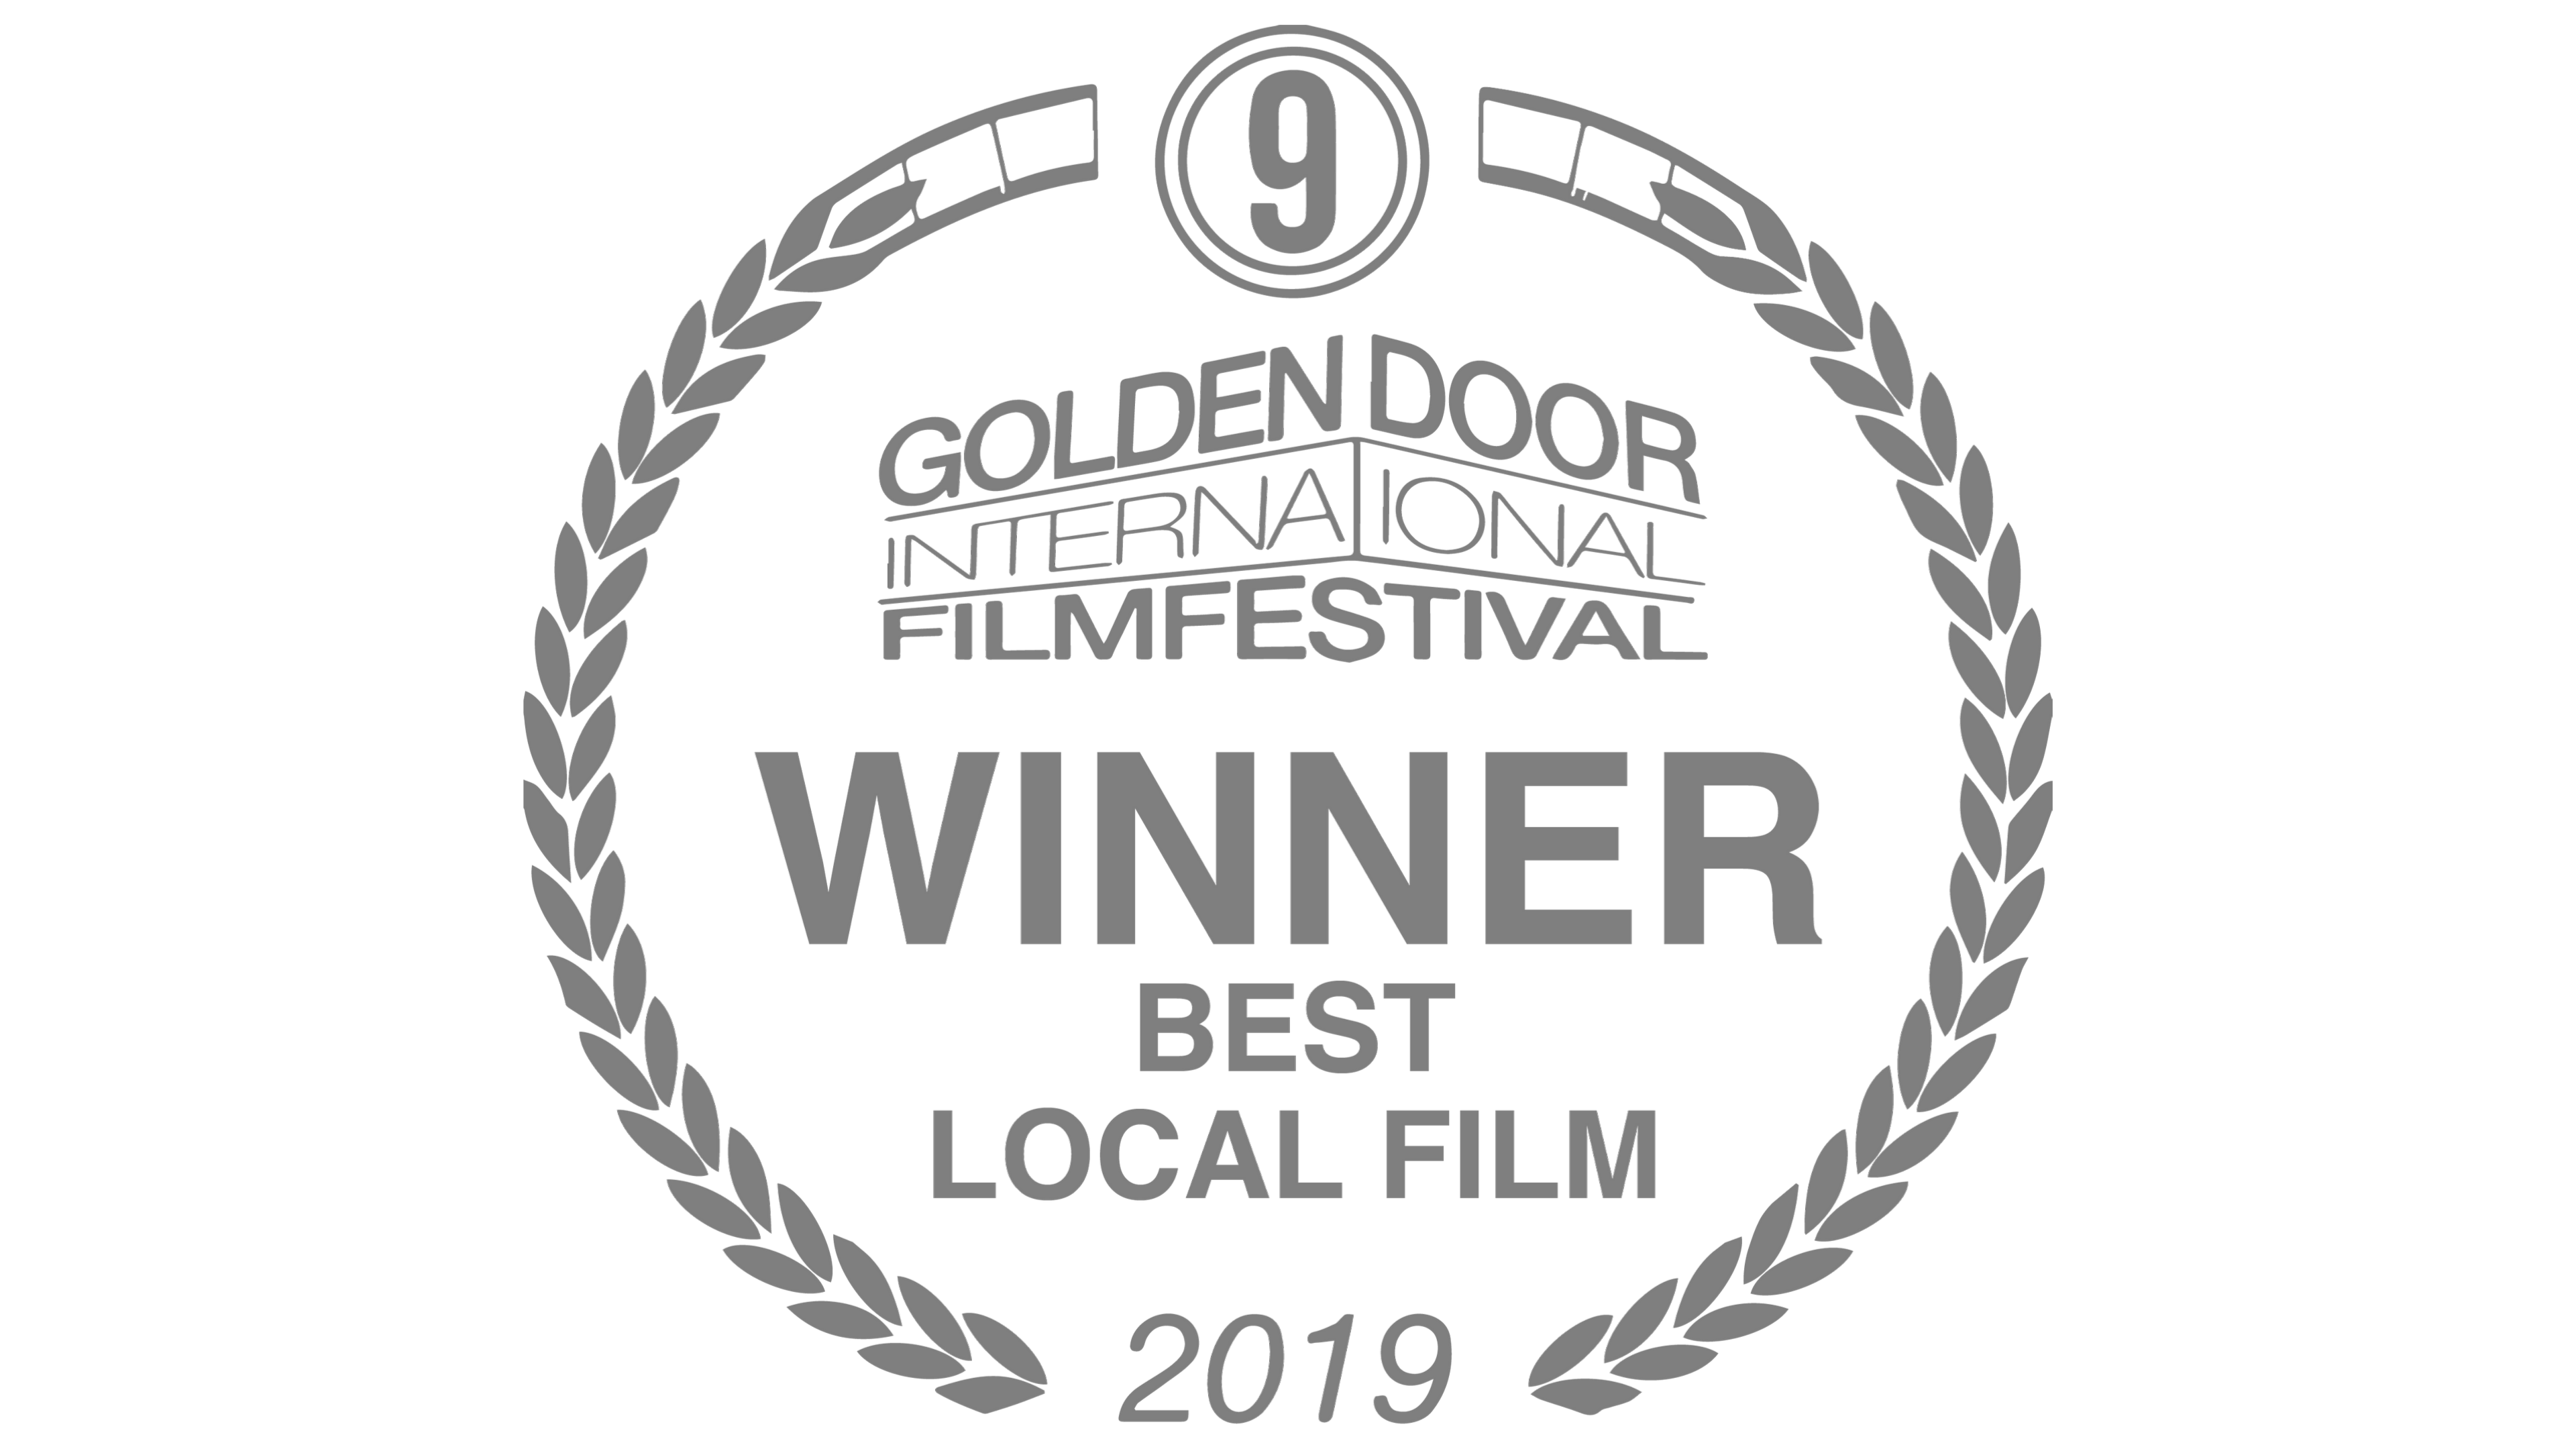 20191004A - Best Director Short Film - Awards Only - GDIFF - LIKE US Movie - FSPAP - THISLEARNING